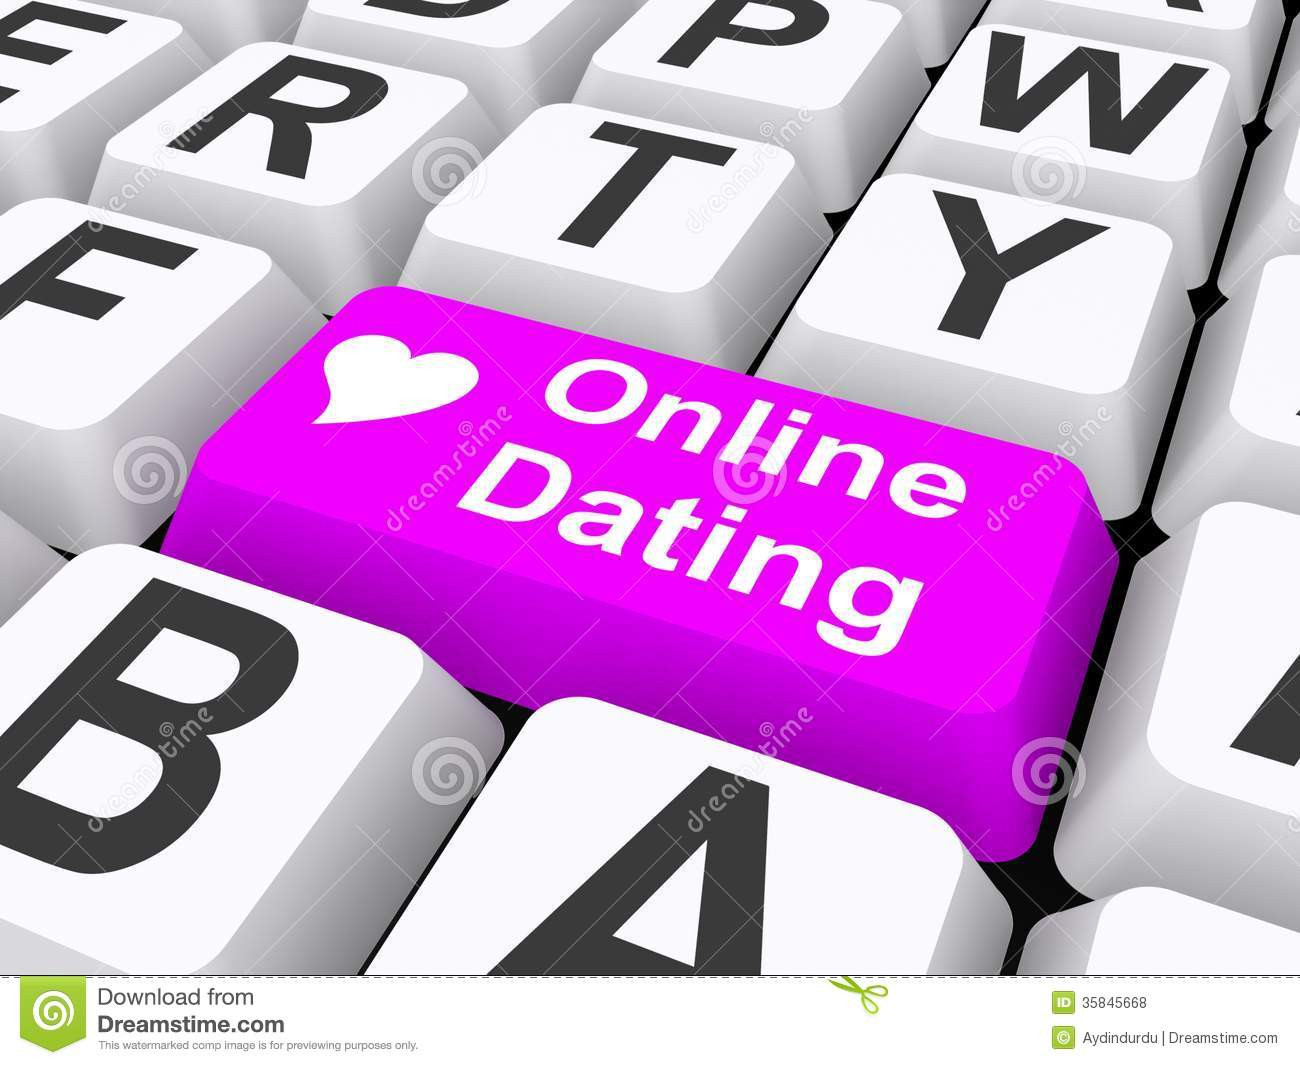 free online dating in alabama Luvfreecom is a 100% free online dating and personal ads site there are a lot of huntsville singles searching romance, friendship, fun and more dates join our huntsville dating site, view free personal ads of single people and talk with them in chat rooms in a real time.